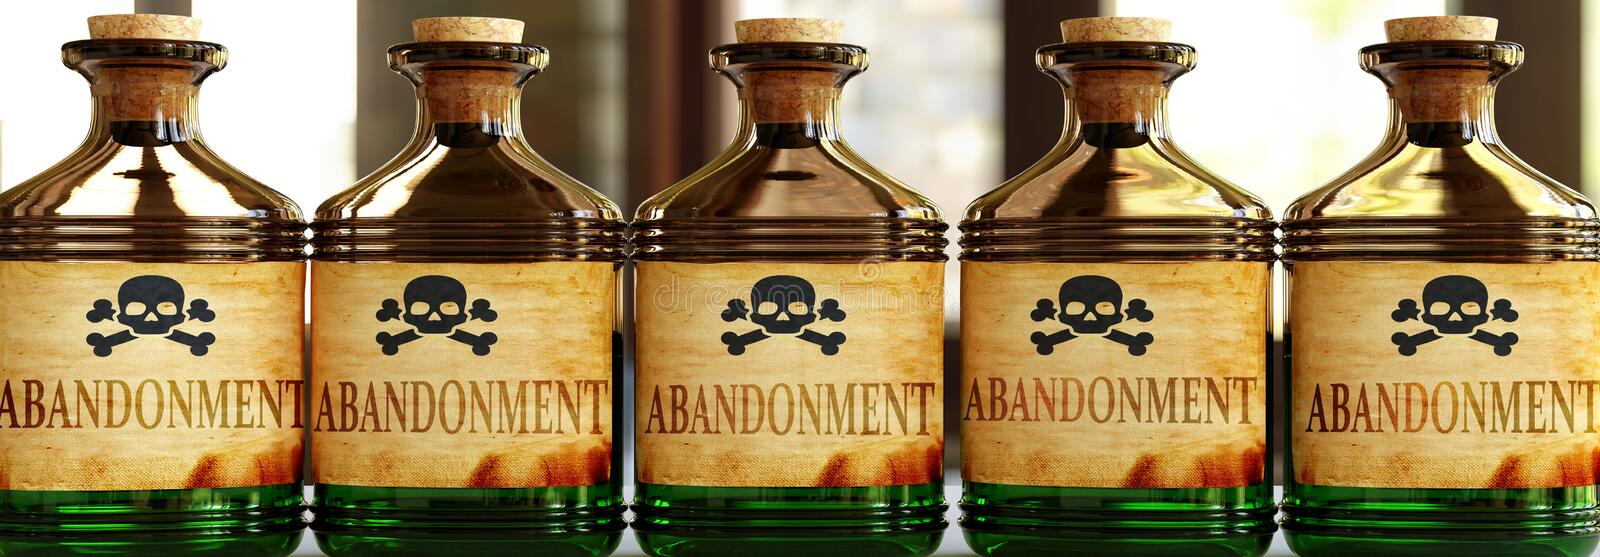 Abandonment can be like a deadly poison - pictured as word Abandonment on toxic bottles to symbolize that Abandonment can be. Unhealthy for body and mind, 3d royalty free illustration